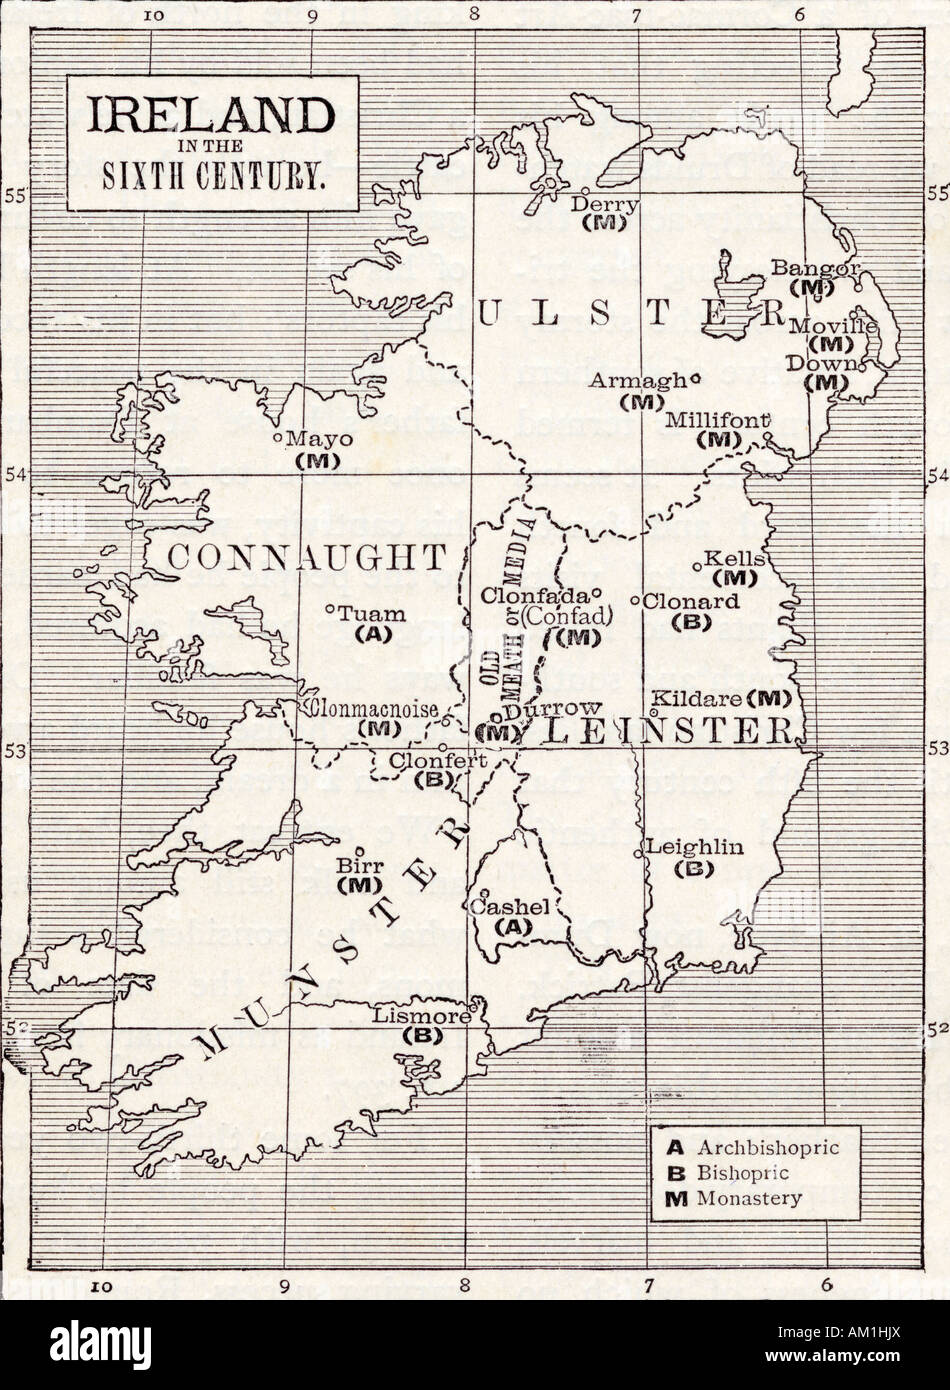 Map Of Ireland Book.Map Of Ireland In The Sixth Century From The Book The Church Of